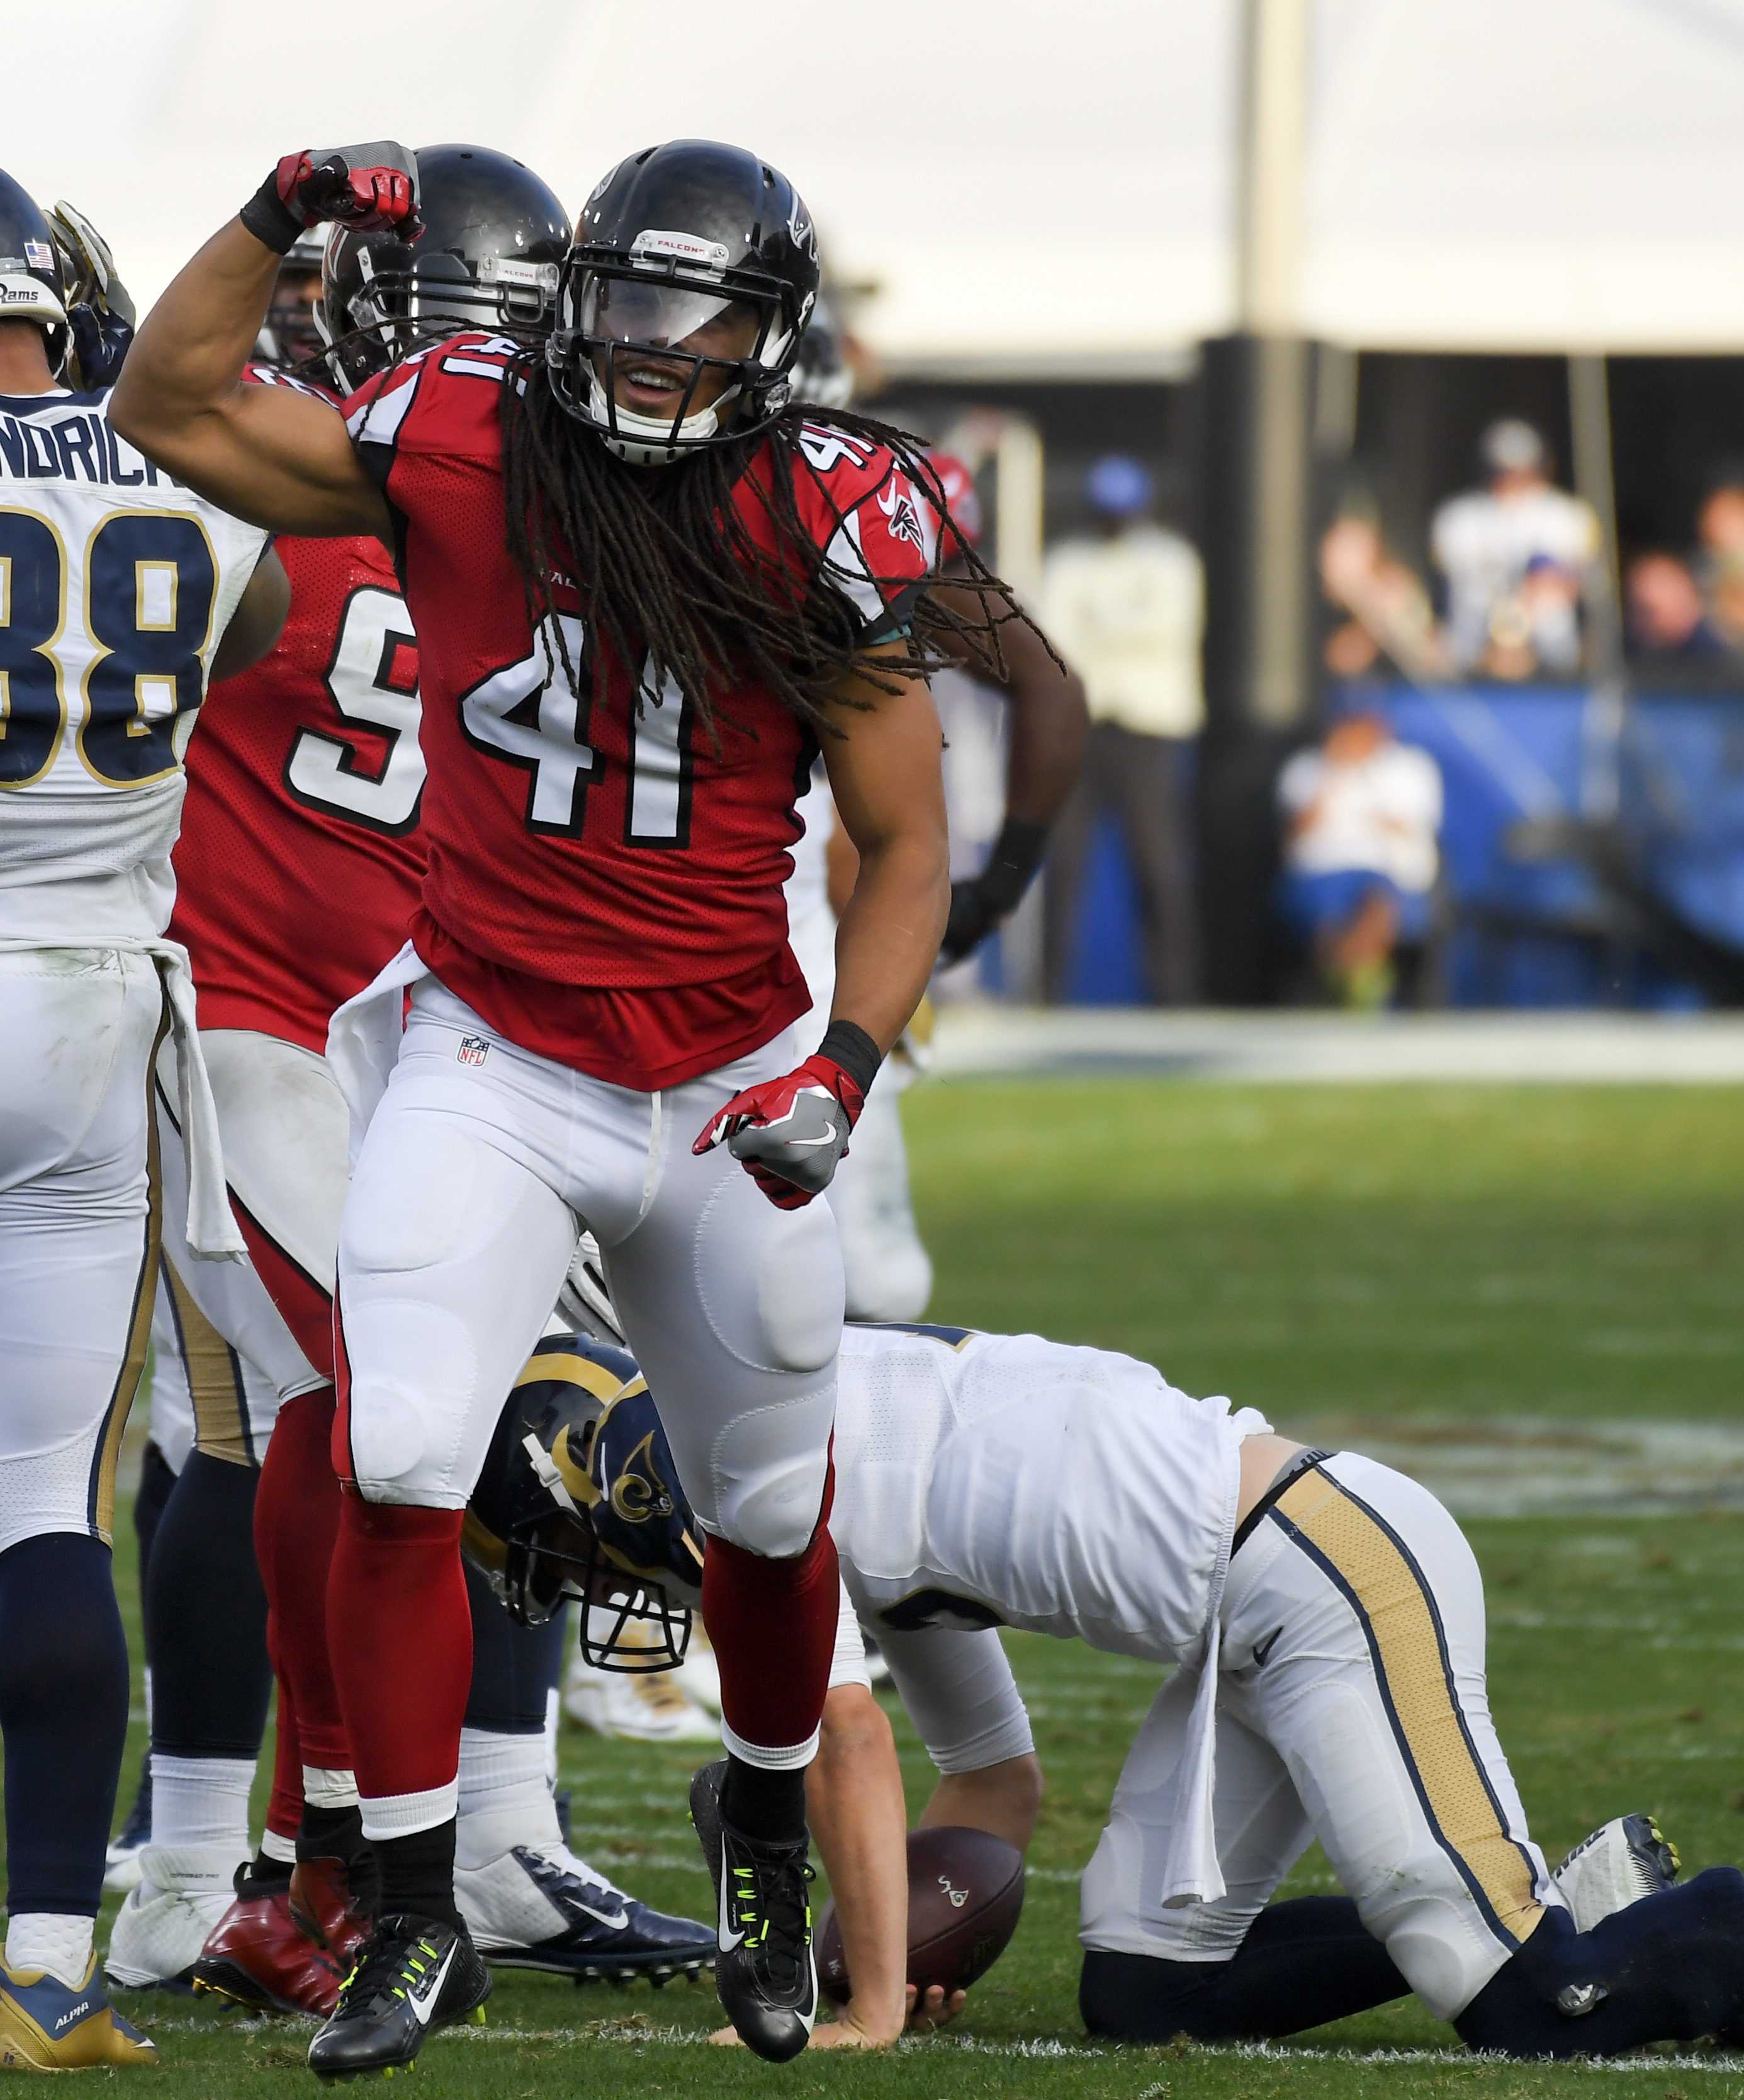 Atlanta Falcons outside linebacker Philip Wheeler celebrates after sacking Los Angeles Rams quarterback Jared Goff during the second half of an NFL football game Sunday, Dec. 11, 2016, in Los Angeles. (AP Photo/Mark J. Terrill)